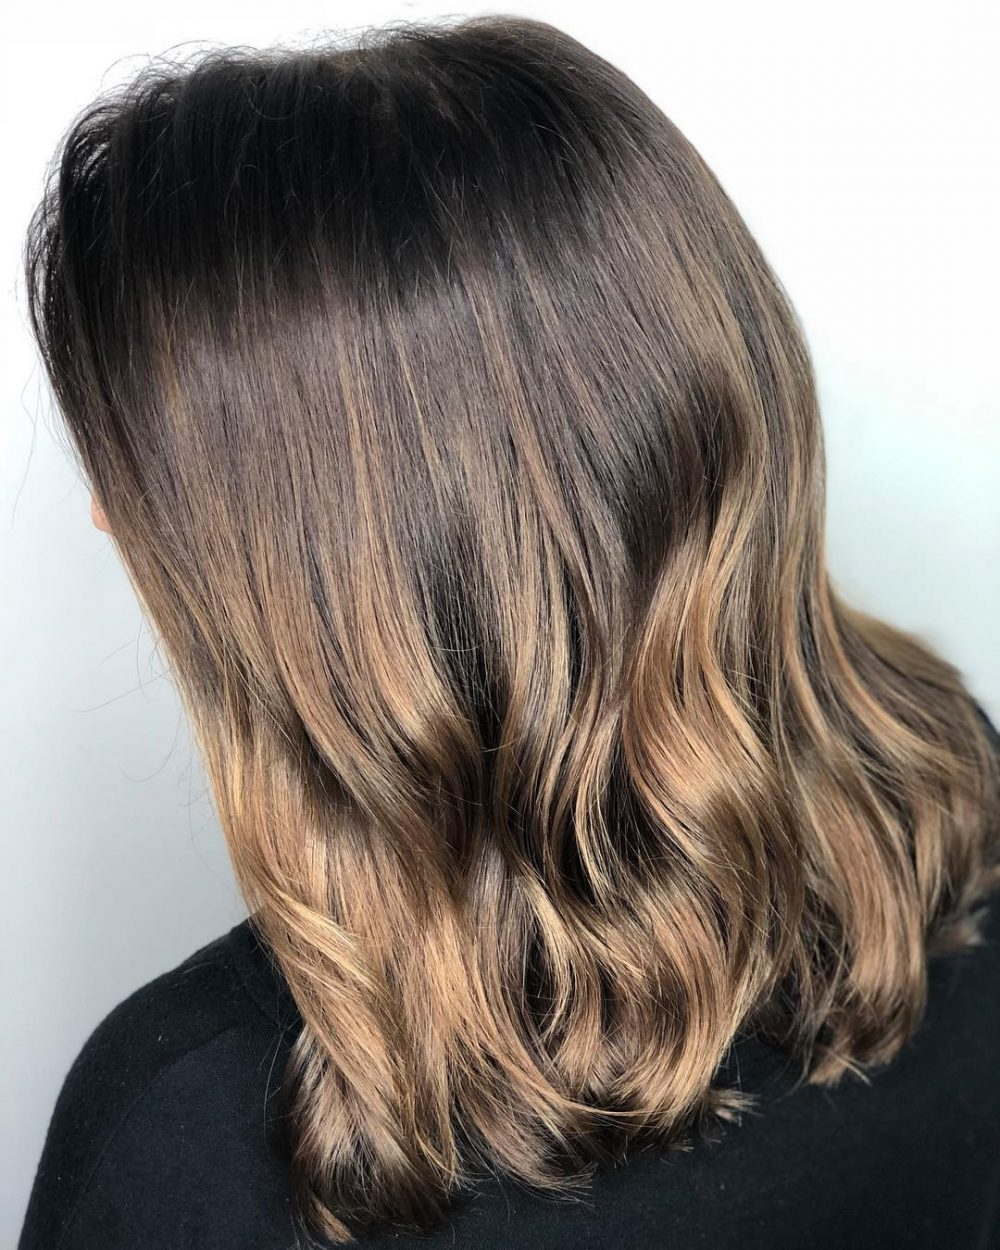 Natural Effect hairstyle